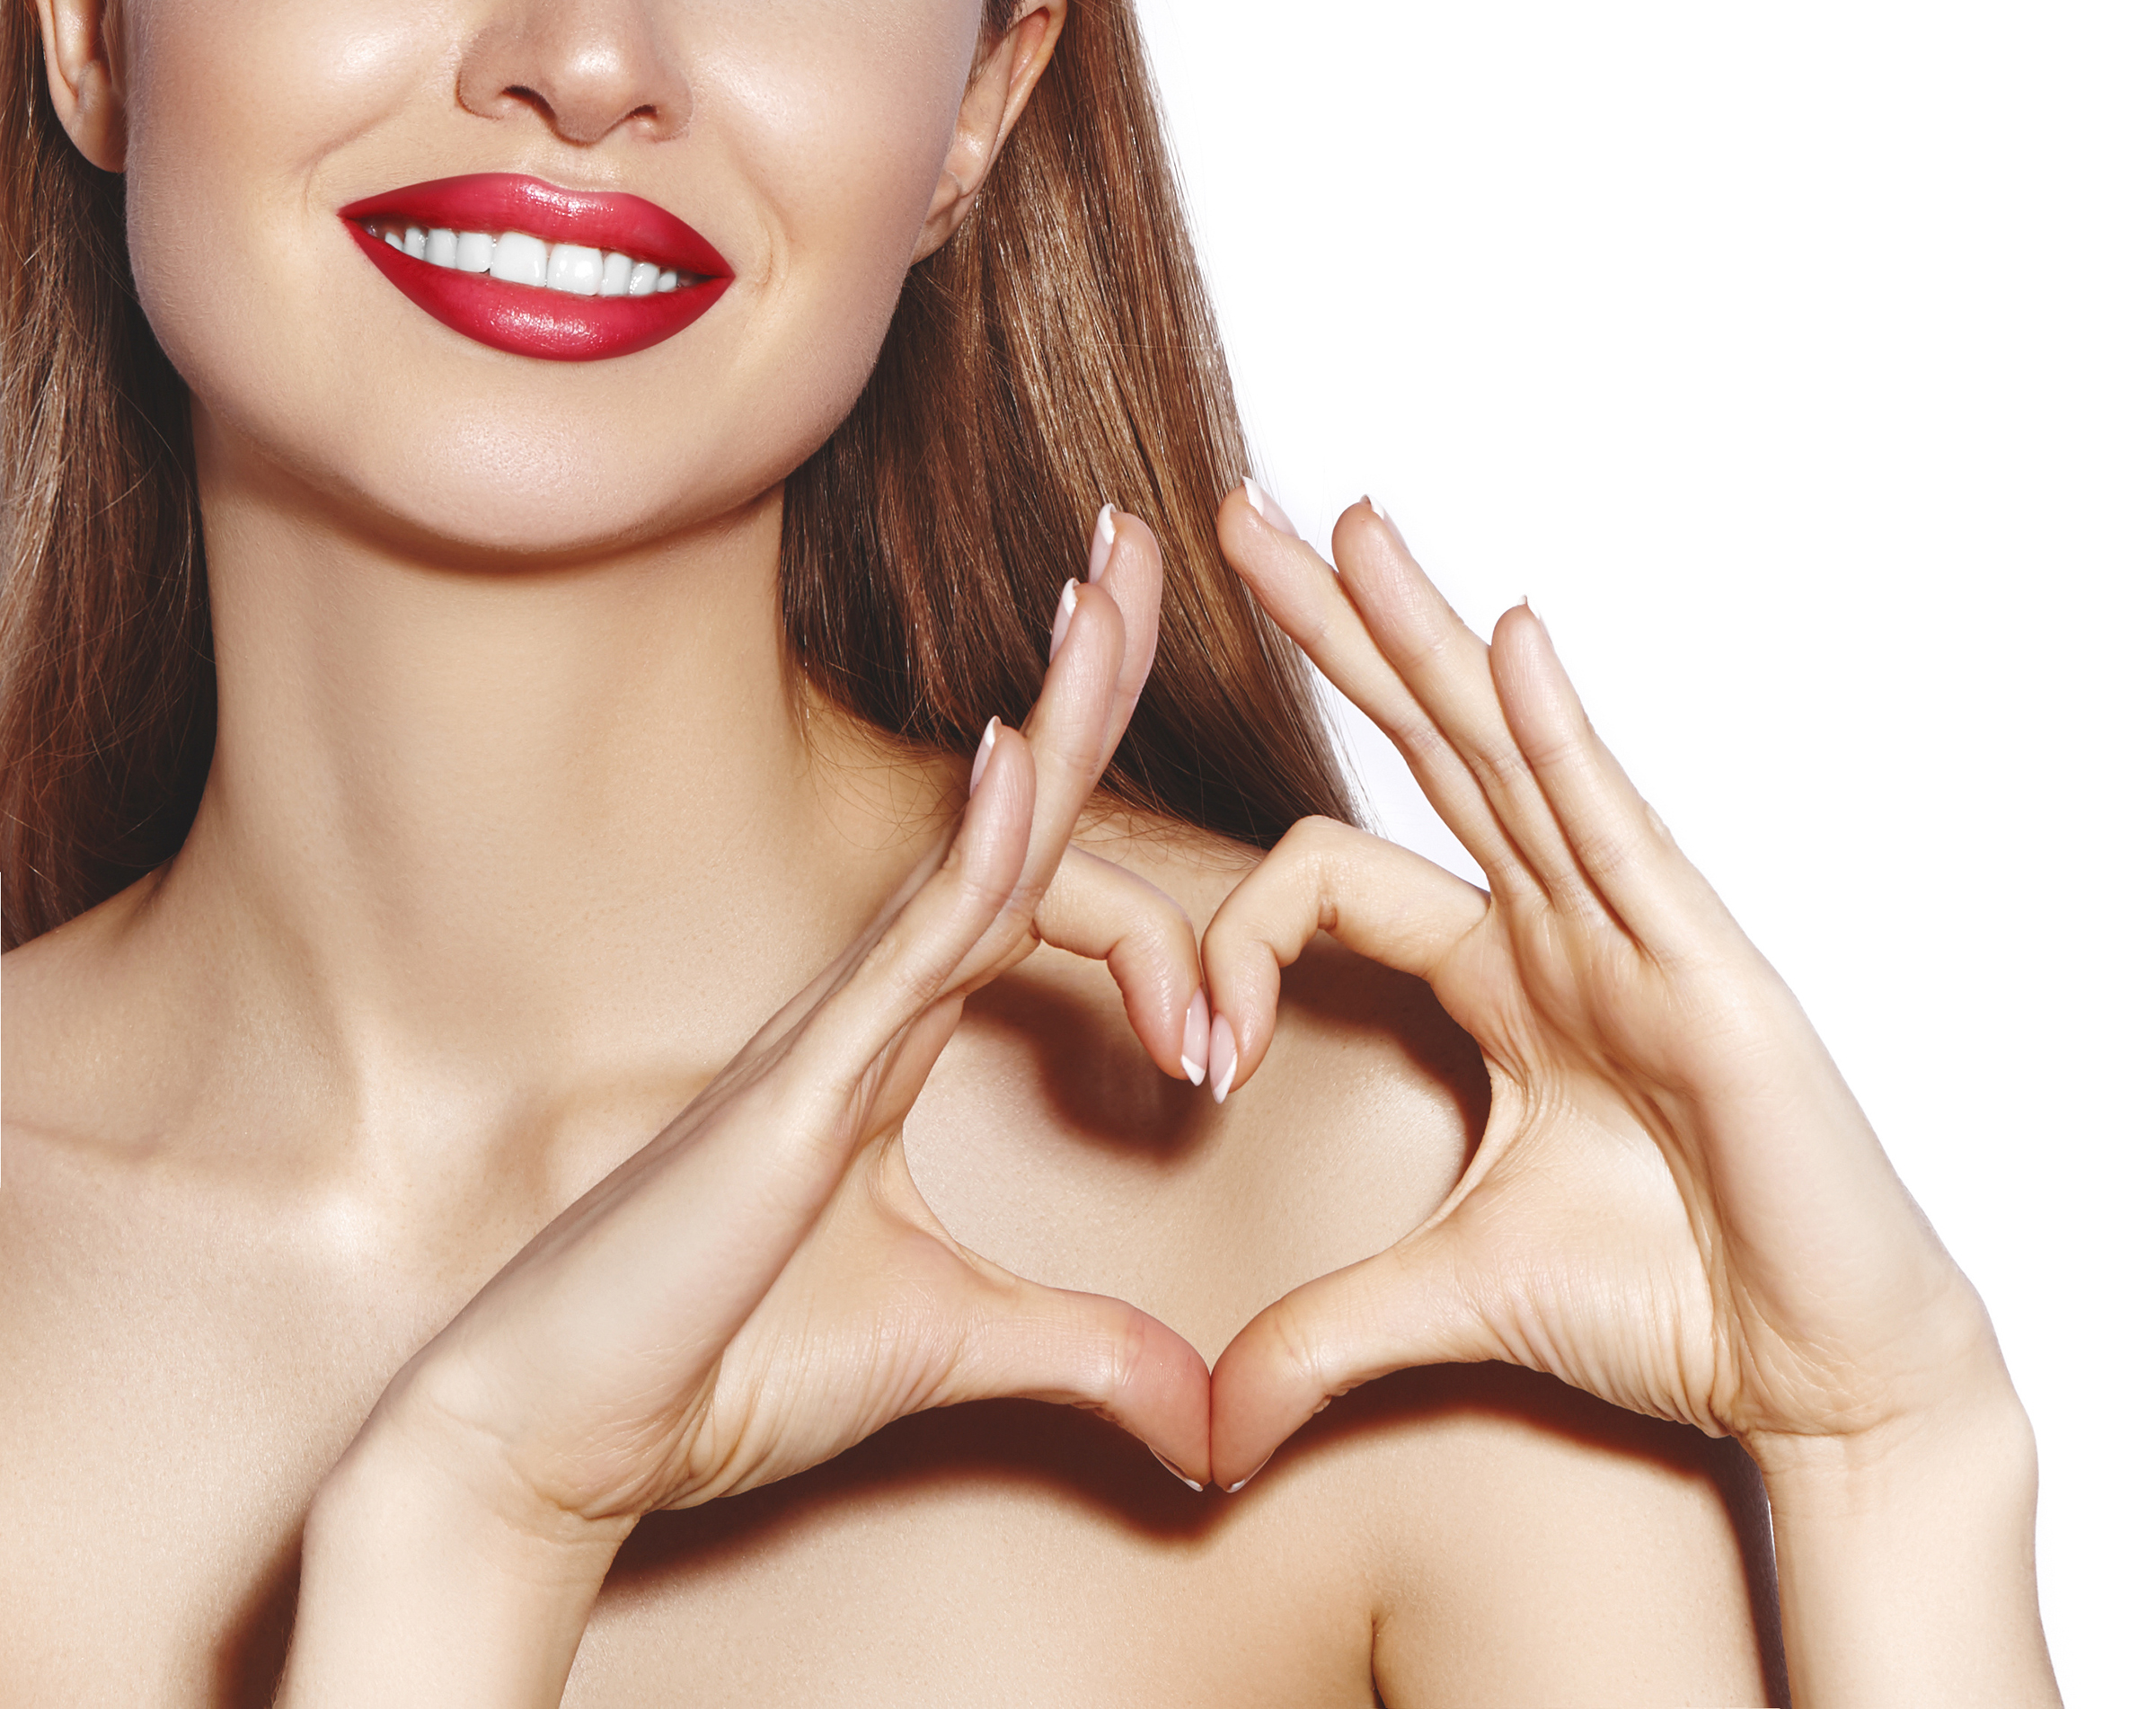 Girls with Red Lipstick and Heart Hands